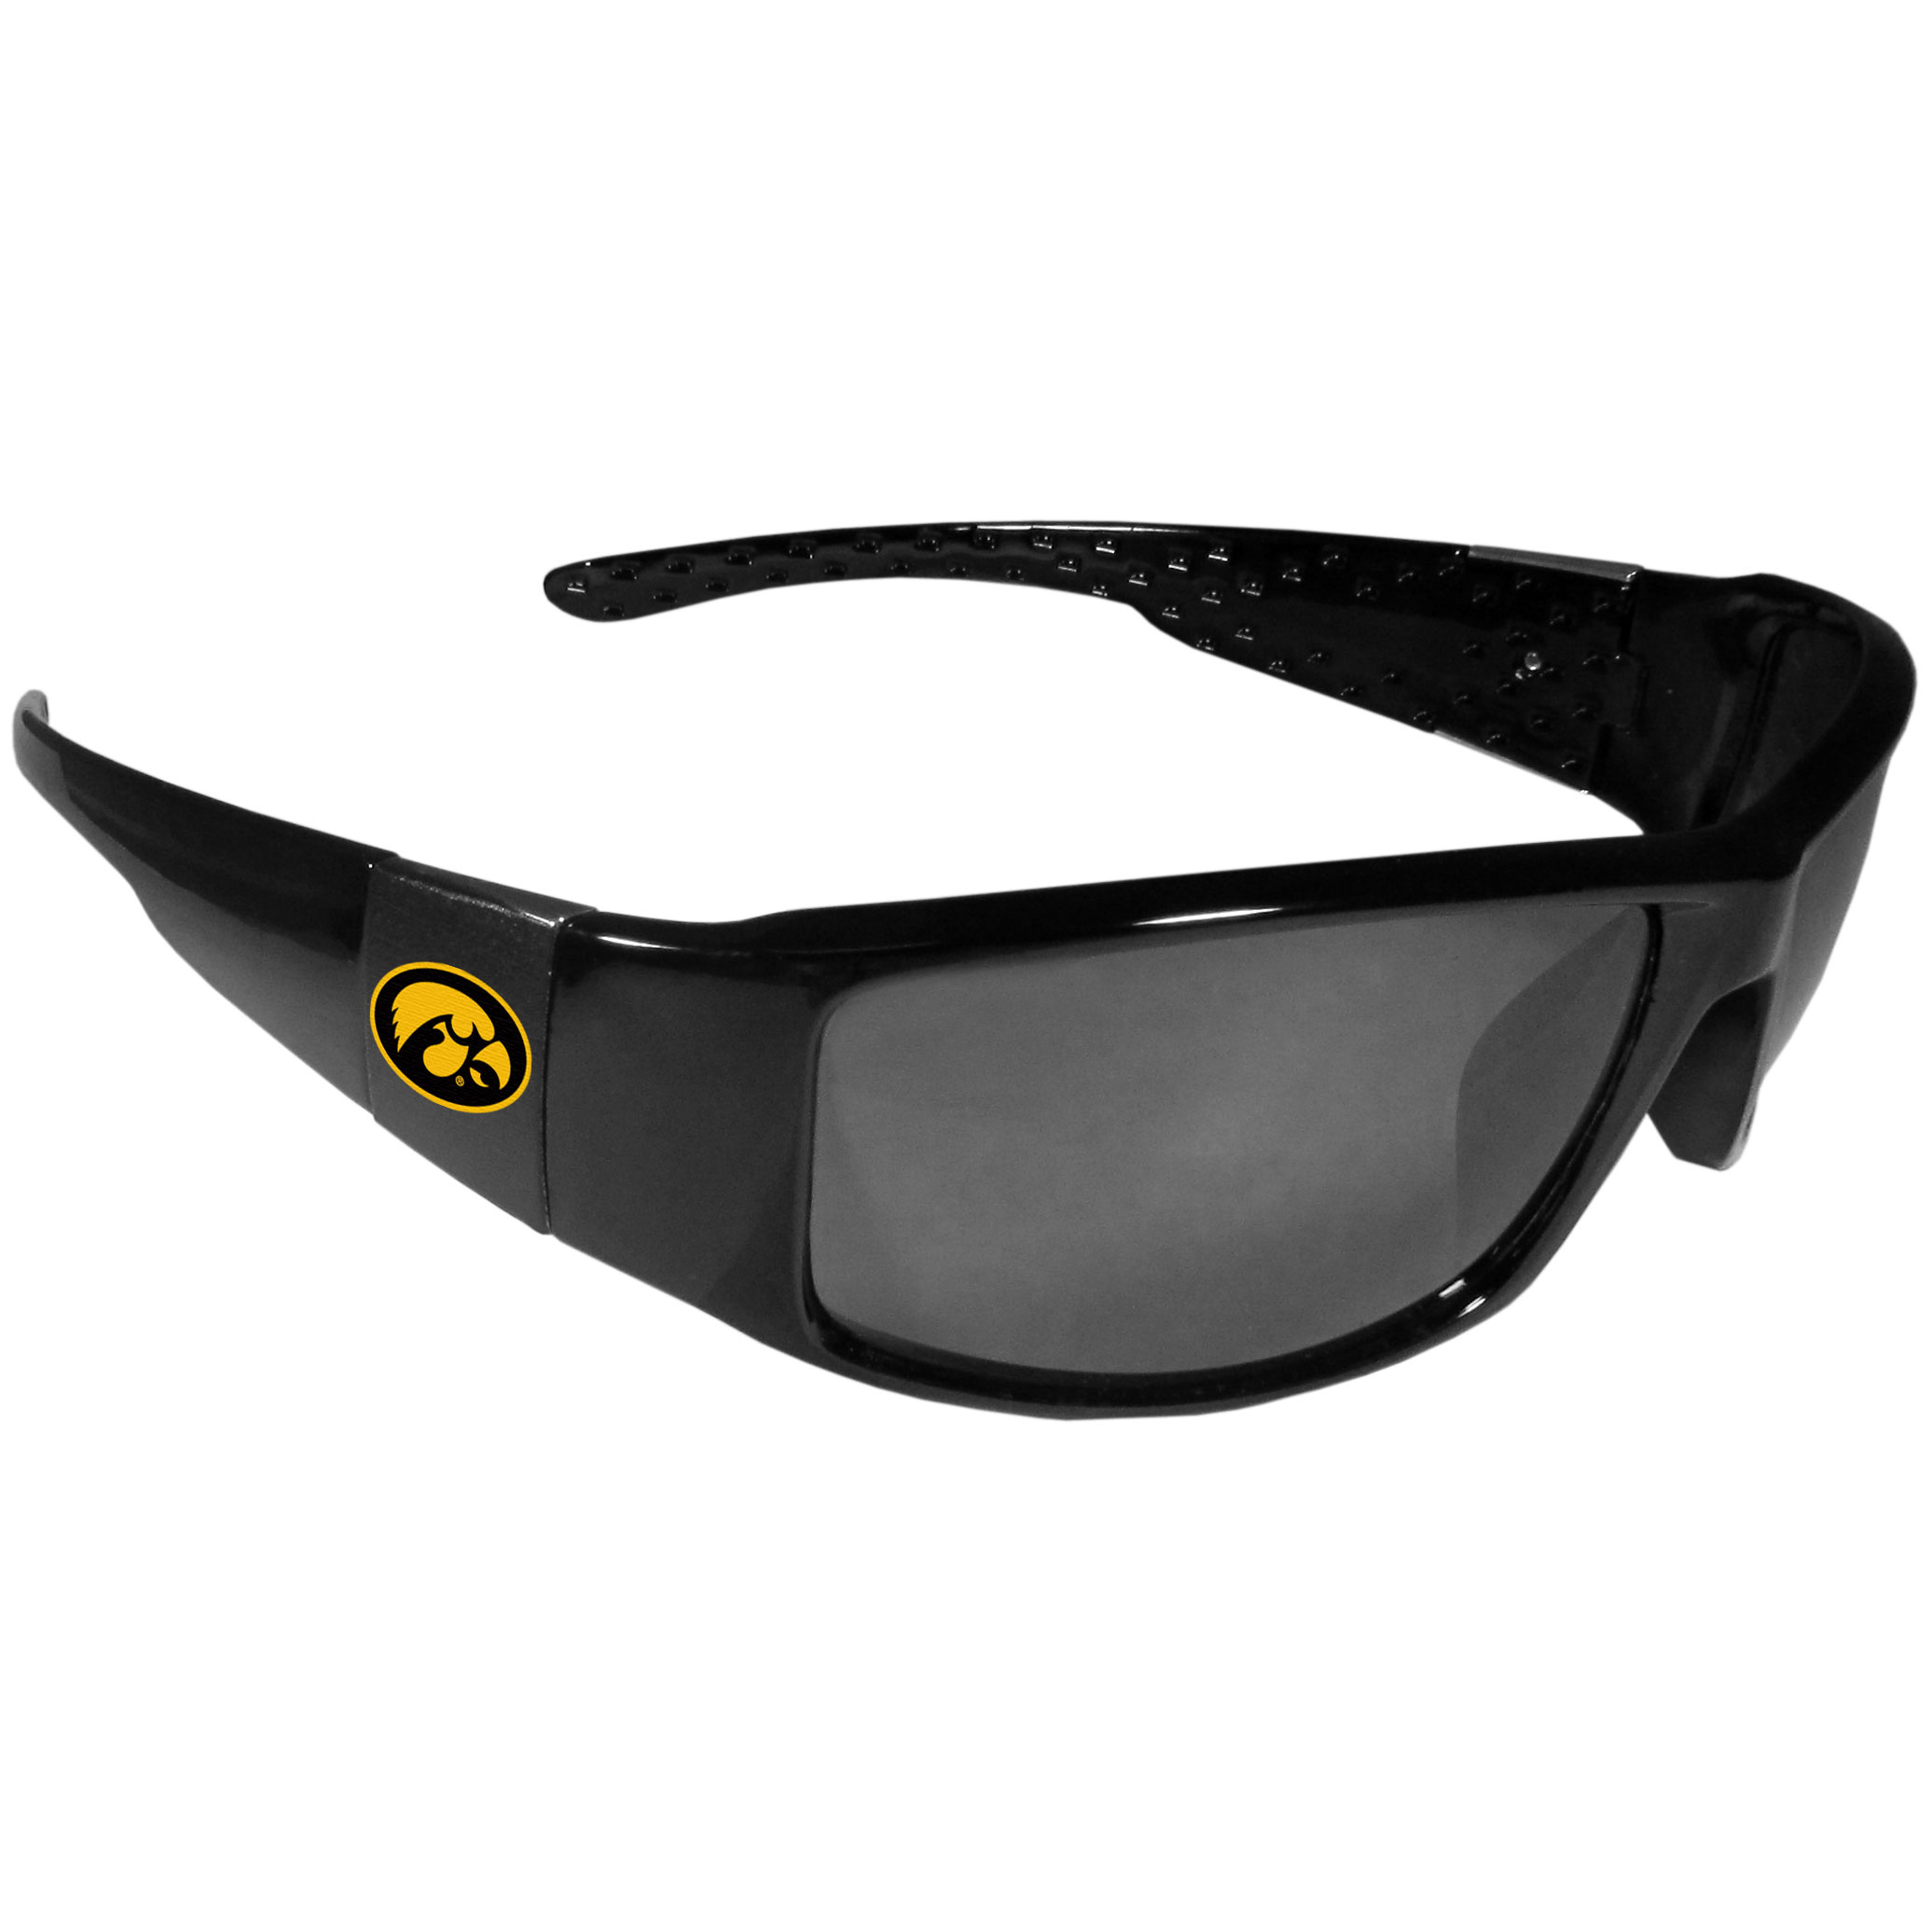 Iowa Hawkeyes Black Wrap Sunglasses - These designer inspired frames have a sleek look in all black with  Iowa Hawkeyes shields on each arm with a printed logo. The shades are perfect for any outdoor activity like; golfing, driving, hiking, fishing or cheering on the team at a tailgating event or at a home game day BBQ with a lens rating of 100% UVA/UVB for maximum UV protection. The high-quality frames are as durable as they are fashionable and with their classic look they are the perfect fan accessory that can be worn everyday for every occasion.